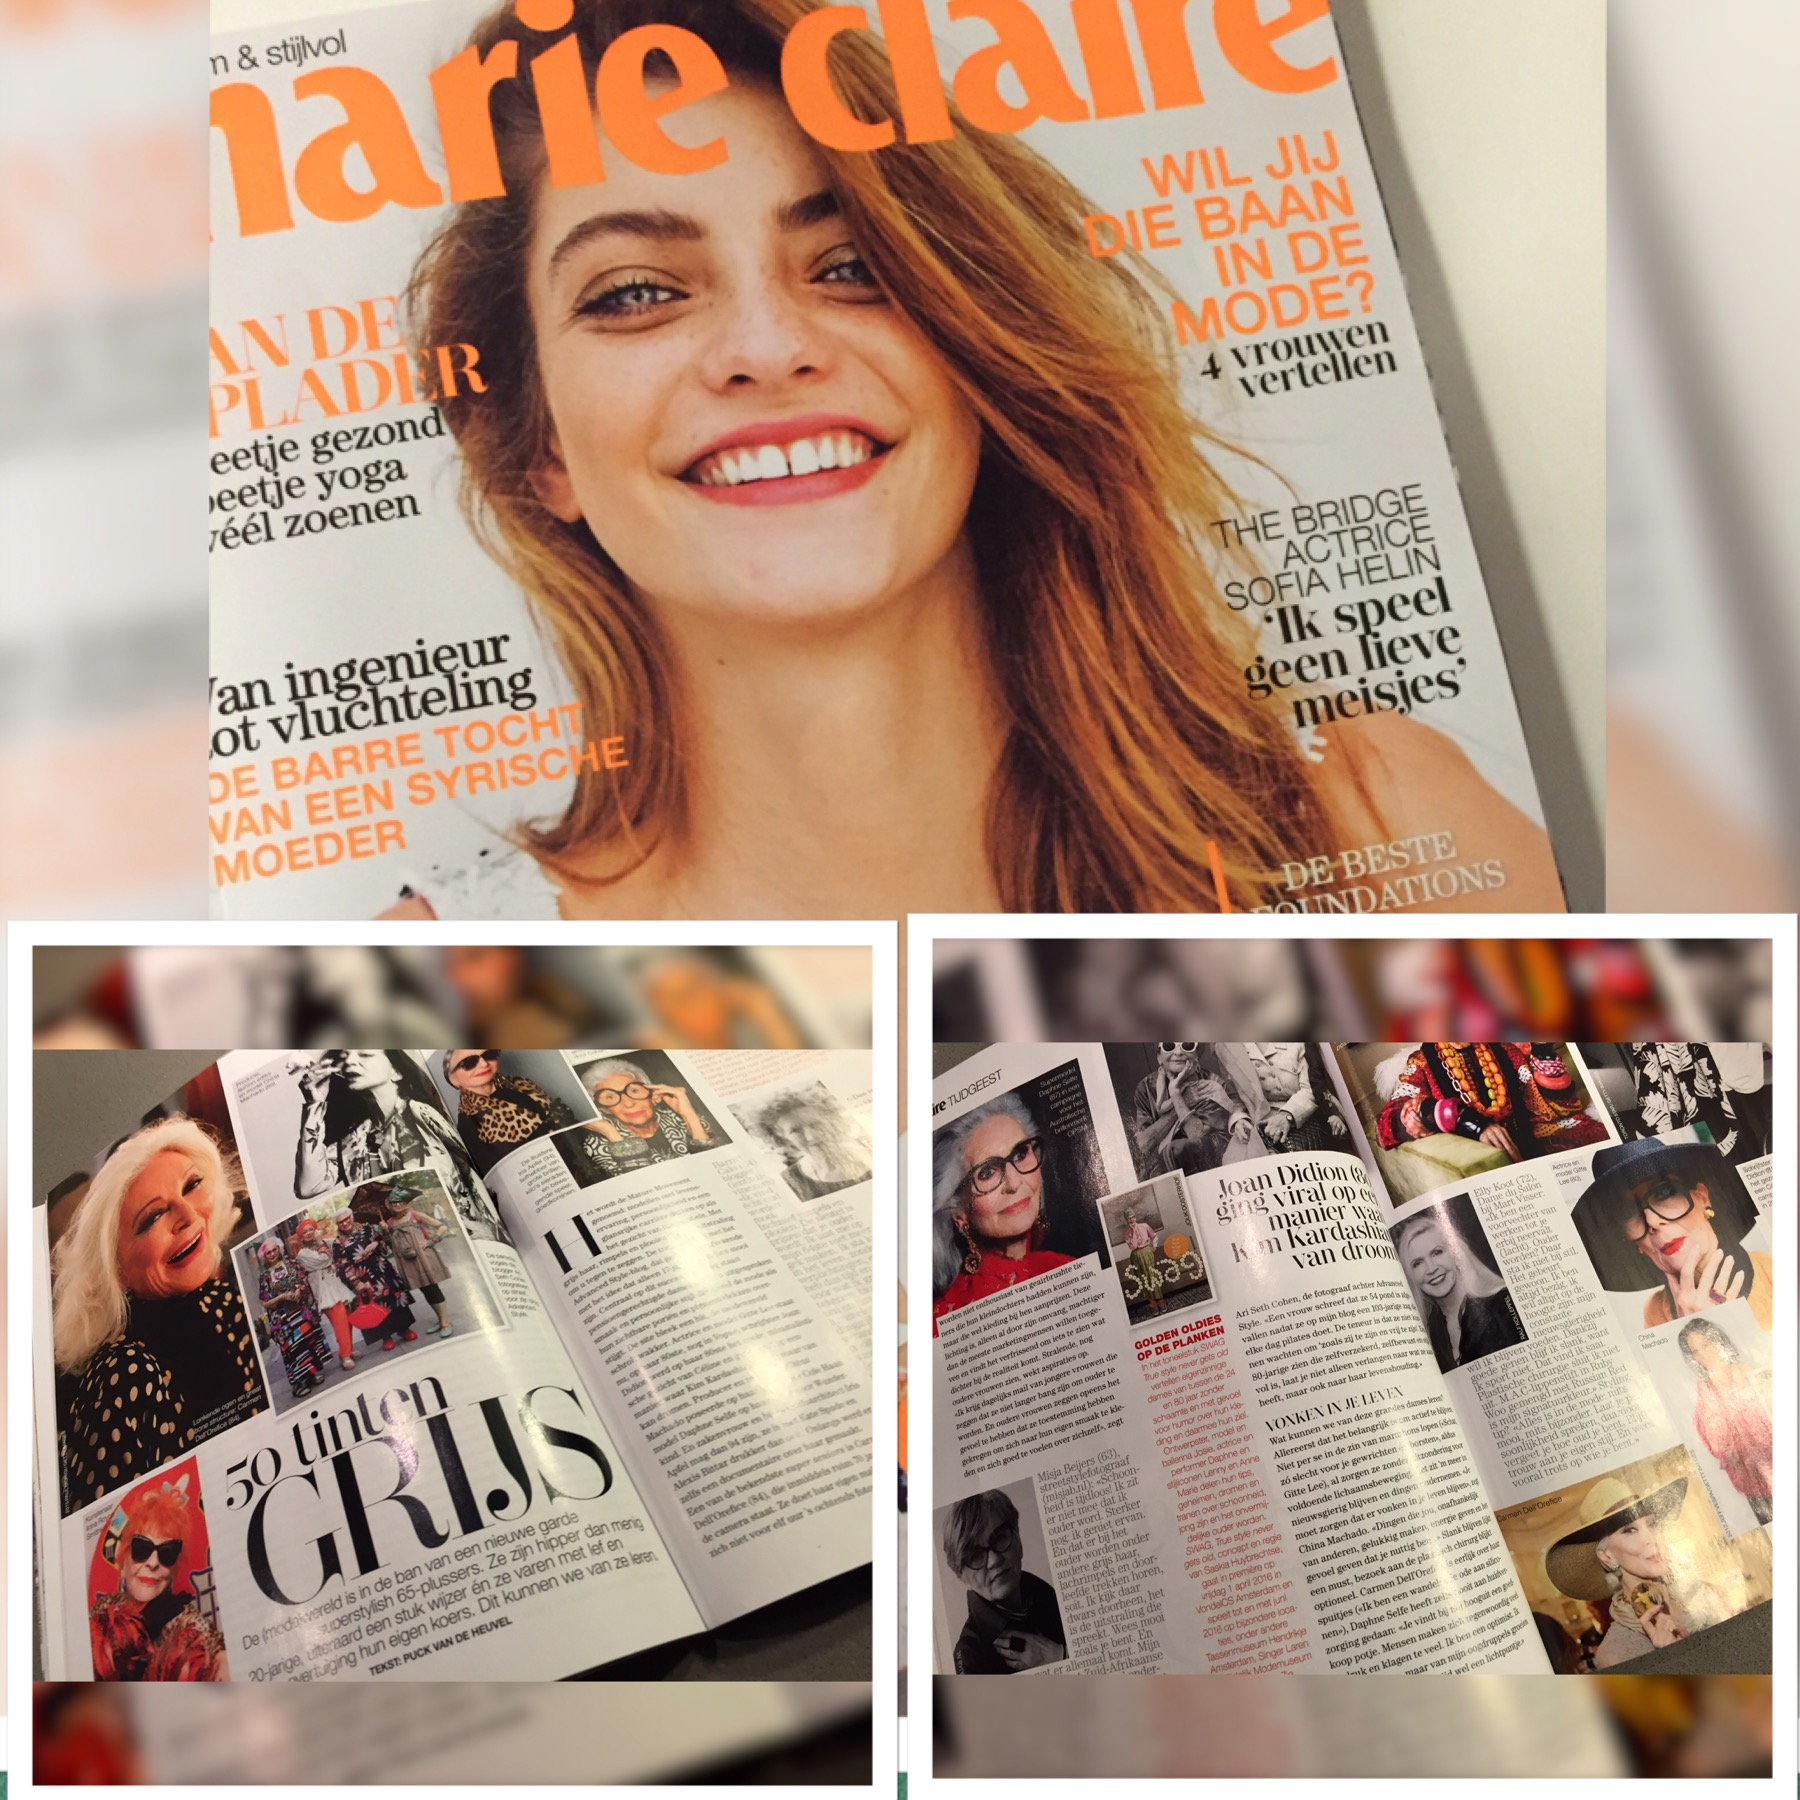 in Marie Claire: 50 shades of grey